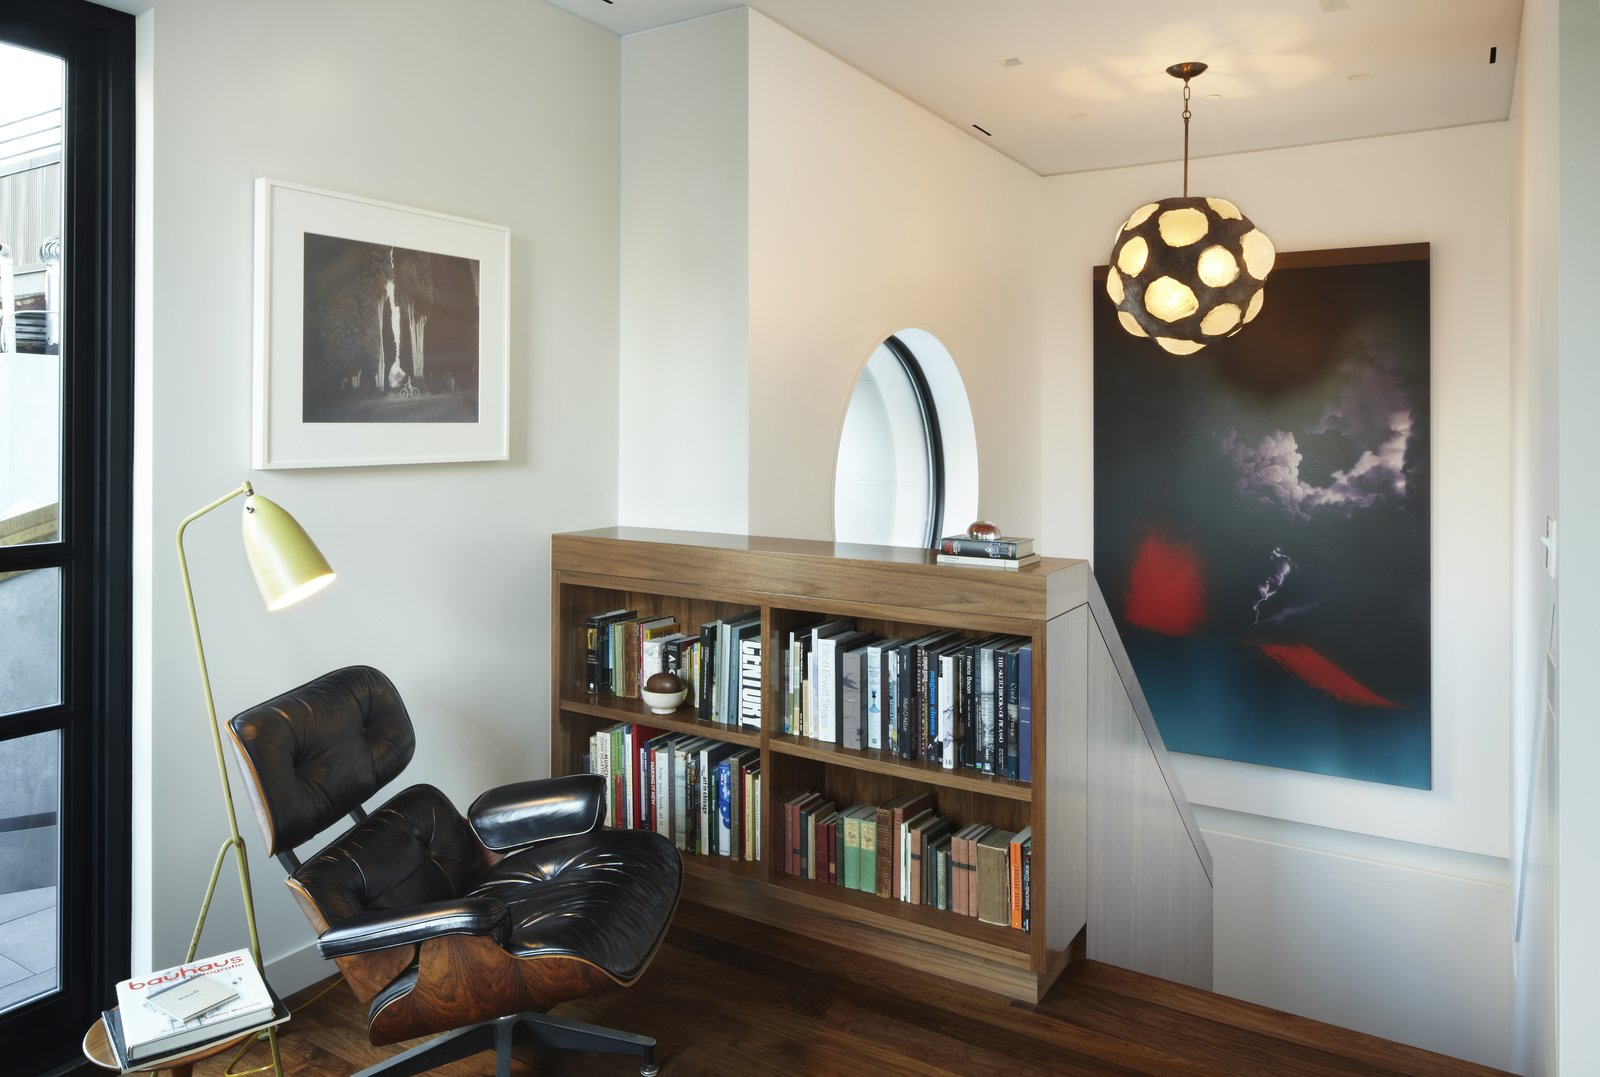 The upper landing in the White Street Residence provides a pausing point when going to and from the roof garden.  A walnut bookshelf, an extension of the walnut knee wall below stores a collection of the owner's art books.  The large circular window which overlooks the roof garden can be seen in the background. A vintage Grasshopper floor lamp by Greta Grossman provides reading light while relaxing in the Eames 670 lounge chair.